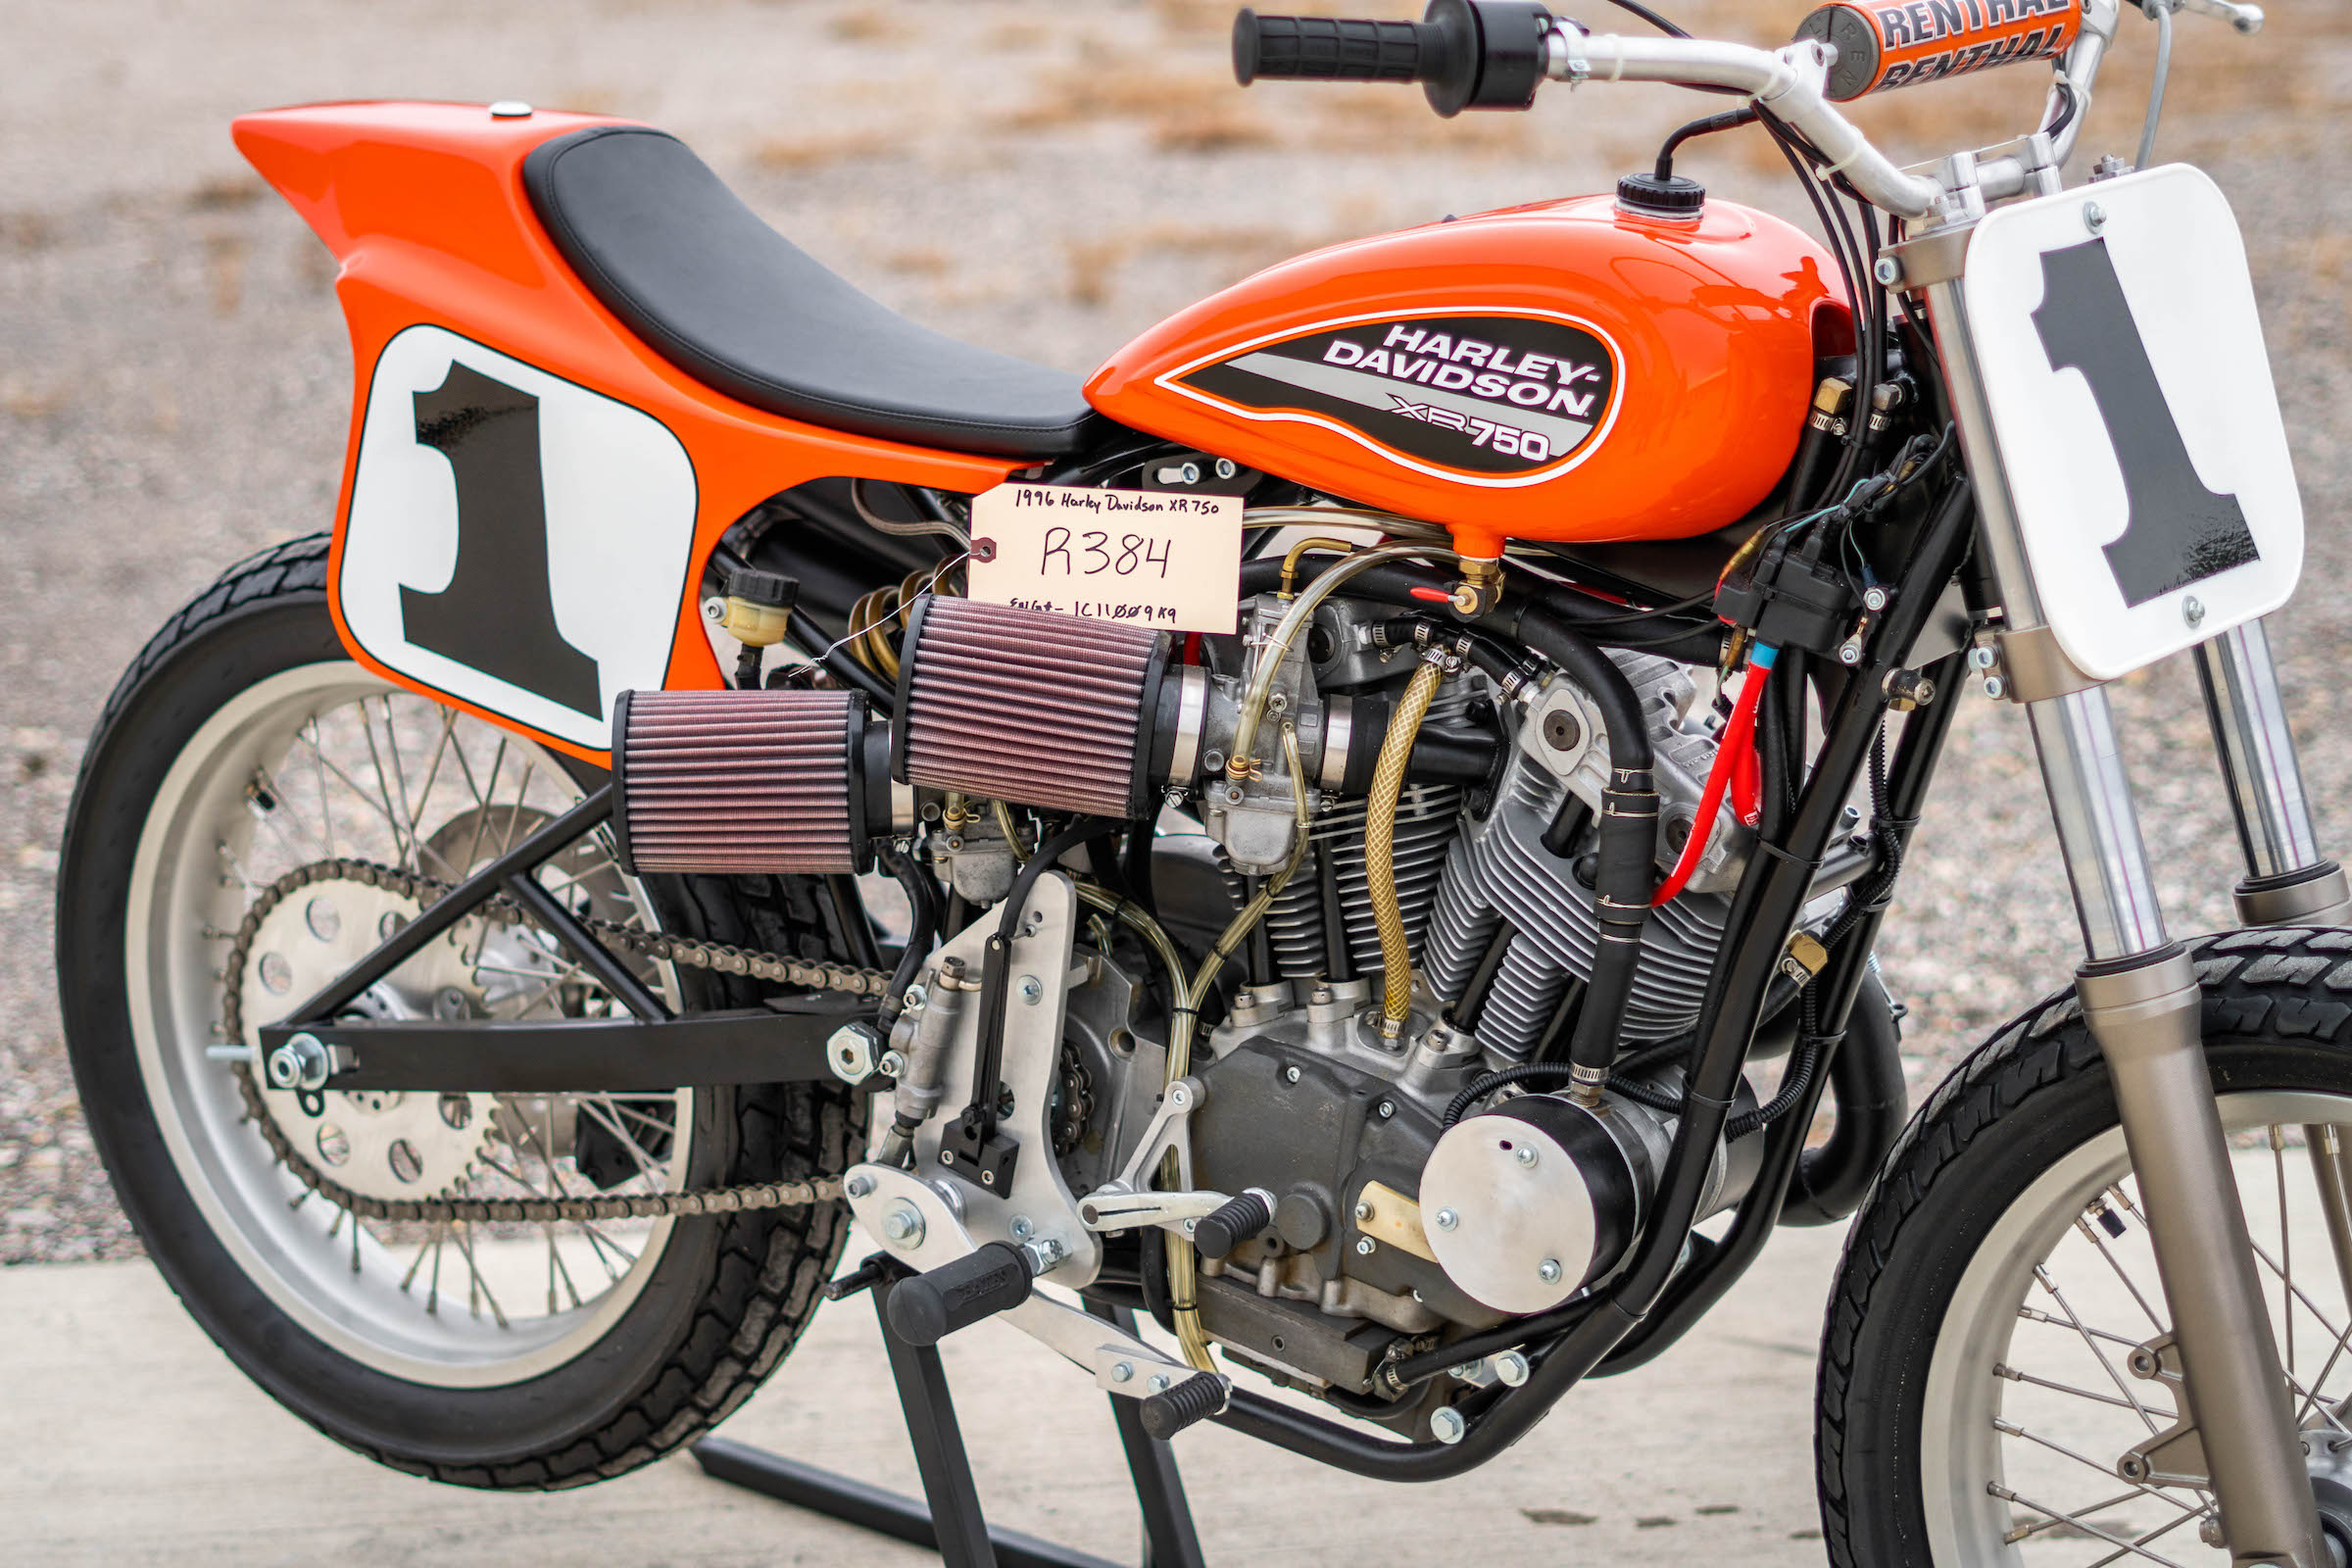 Harley Davidson: A Restored Racer Ready For The